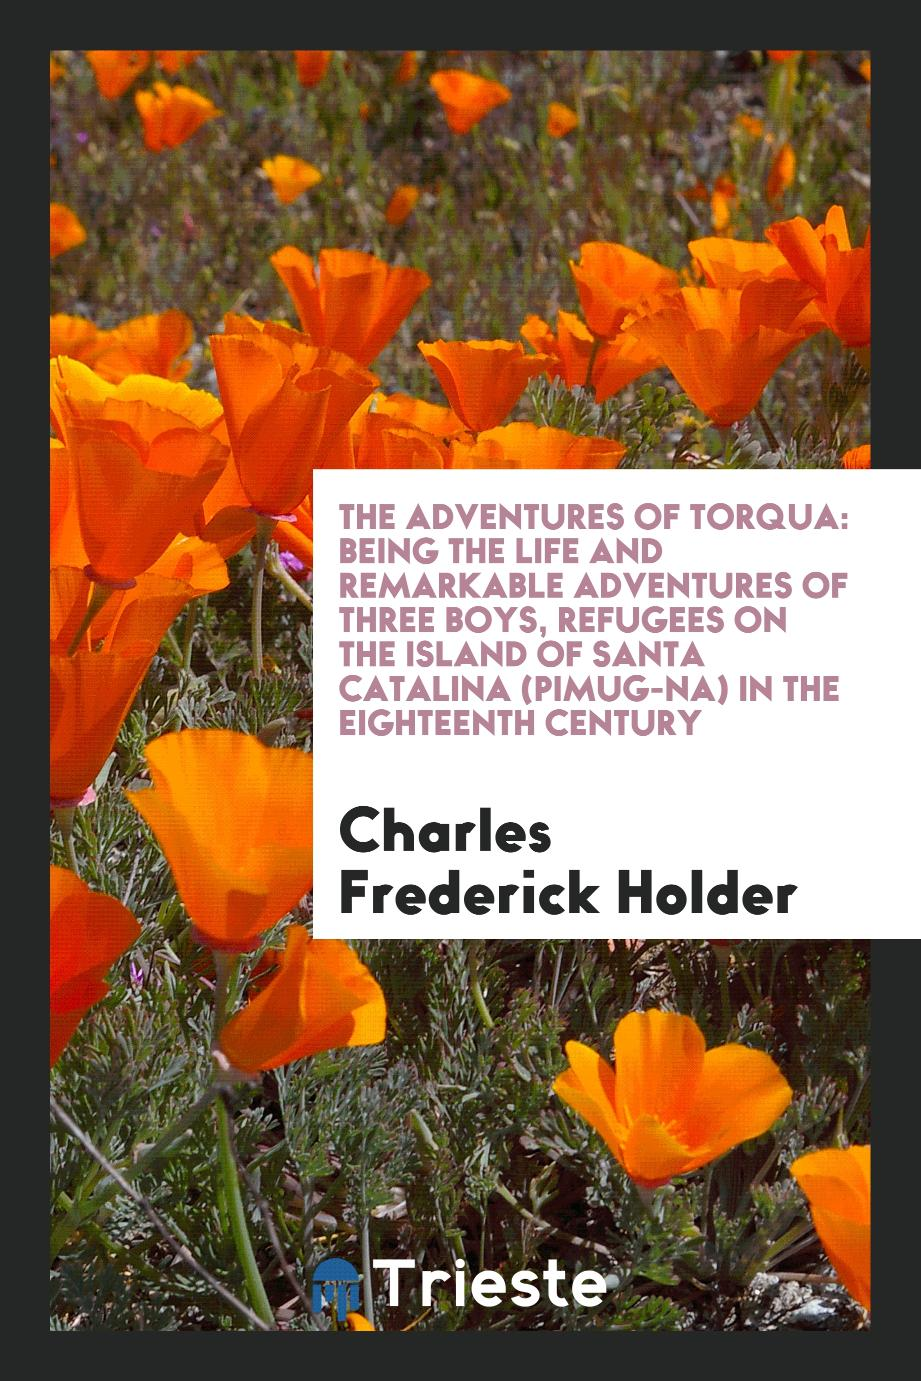 The Adventures of Torqua: Being the Life and Remarkable Adventures of Three Boys, Refugees on the Island of Santa Catalina (Pimug-Na) in the Eighteenth Century